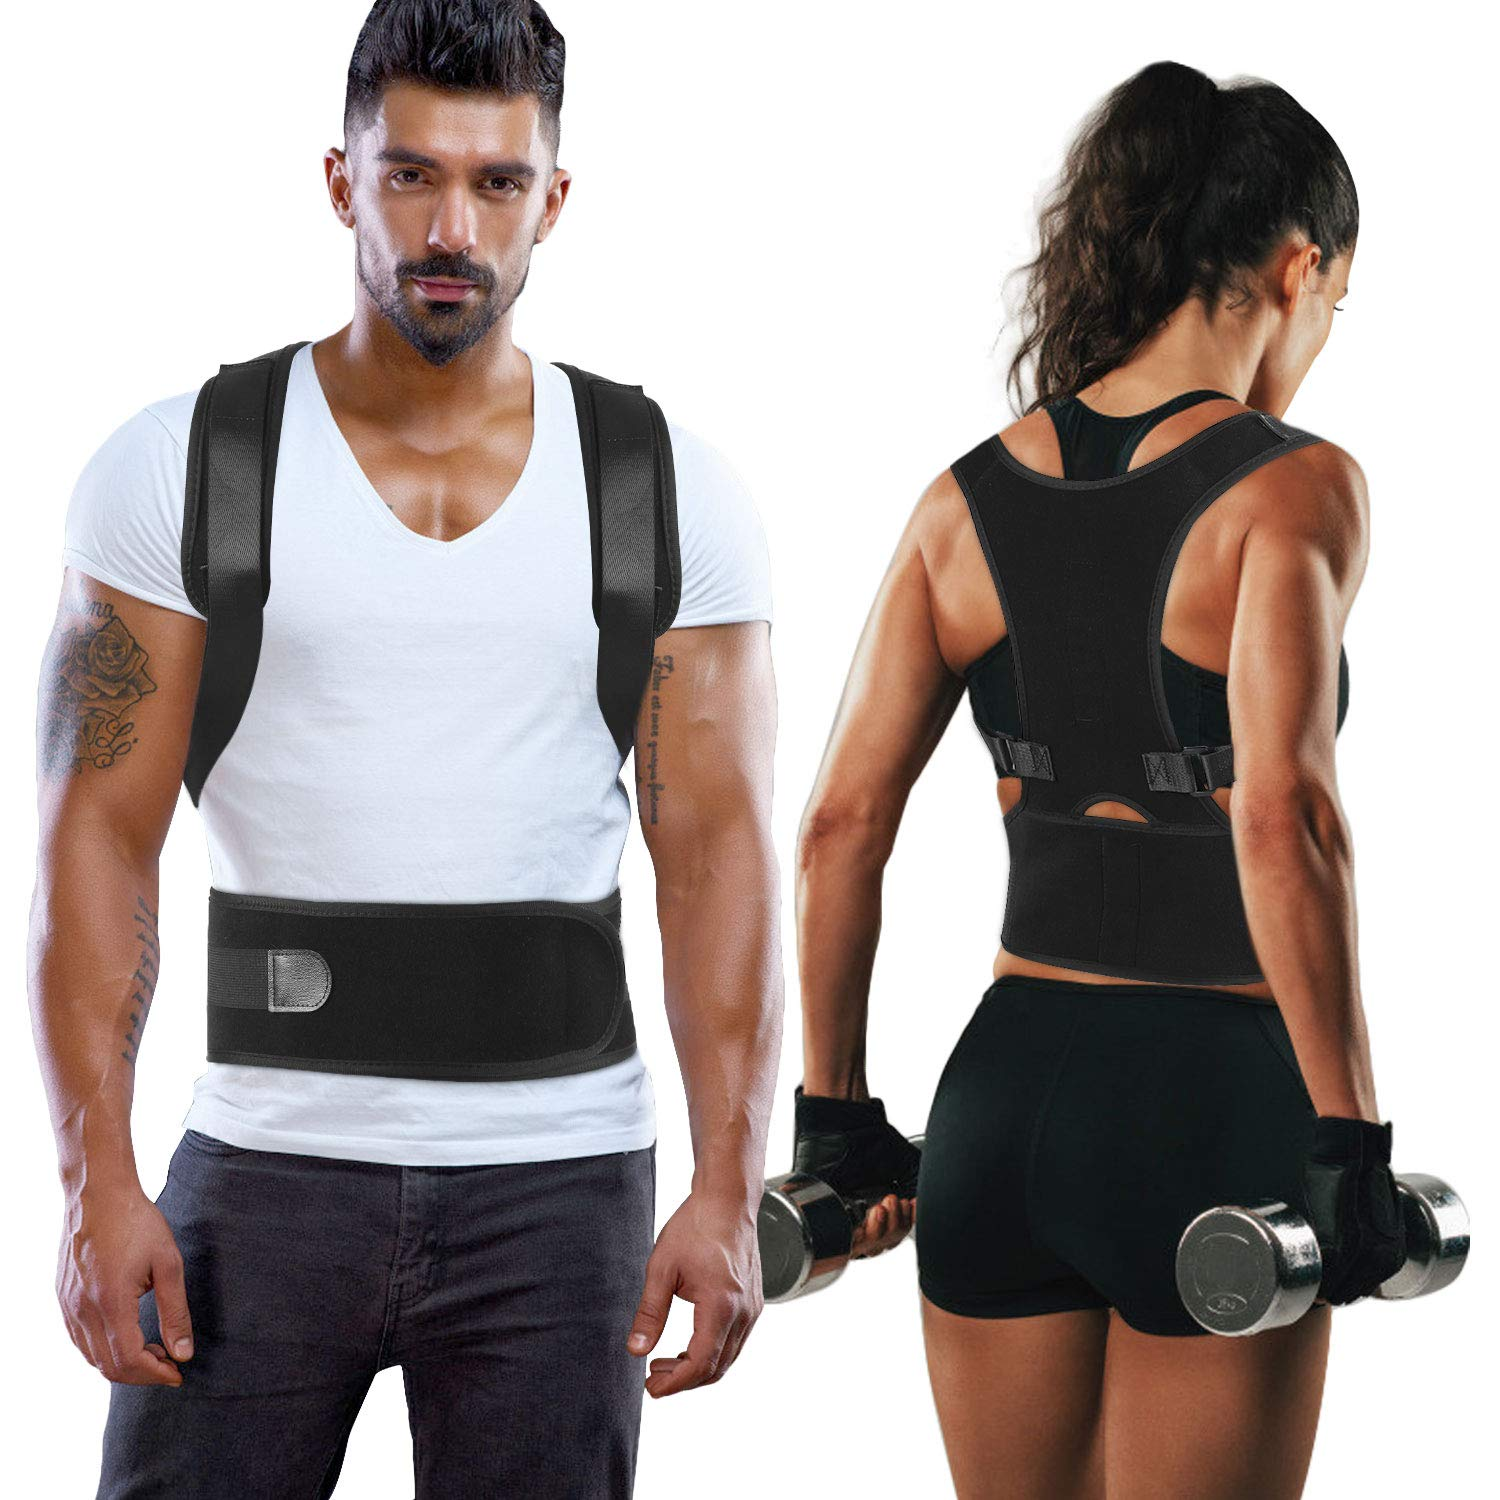 Back Brace Posture Corrector - Shoulder Support Trainer for Pain Relief   Improves Posture and Provides Lumbar Support,for Men and Women Supports Correct Posture Upper and Lower Back Lumbar